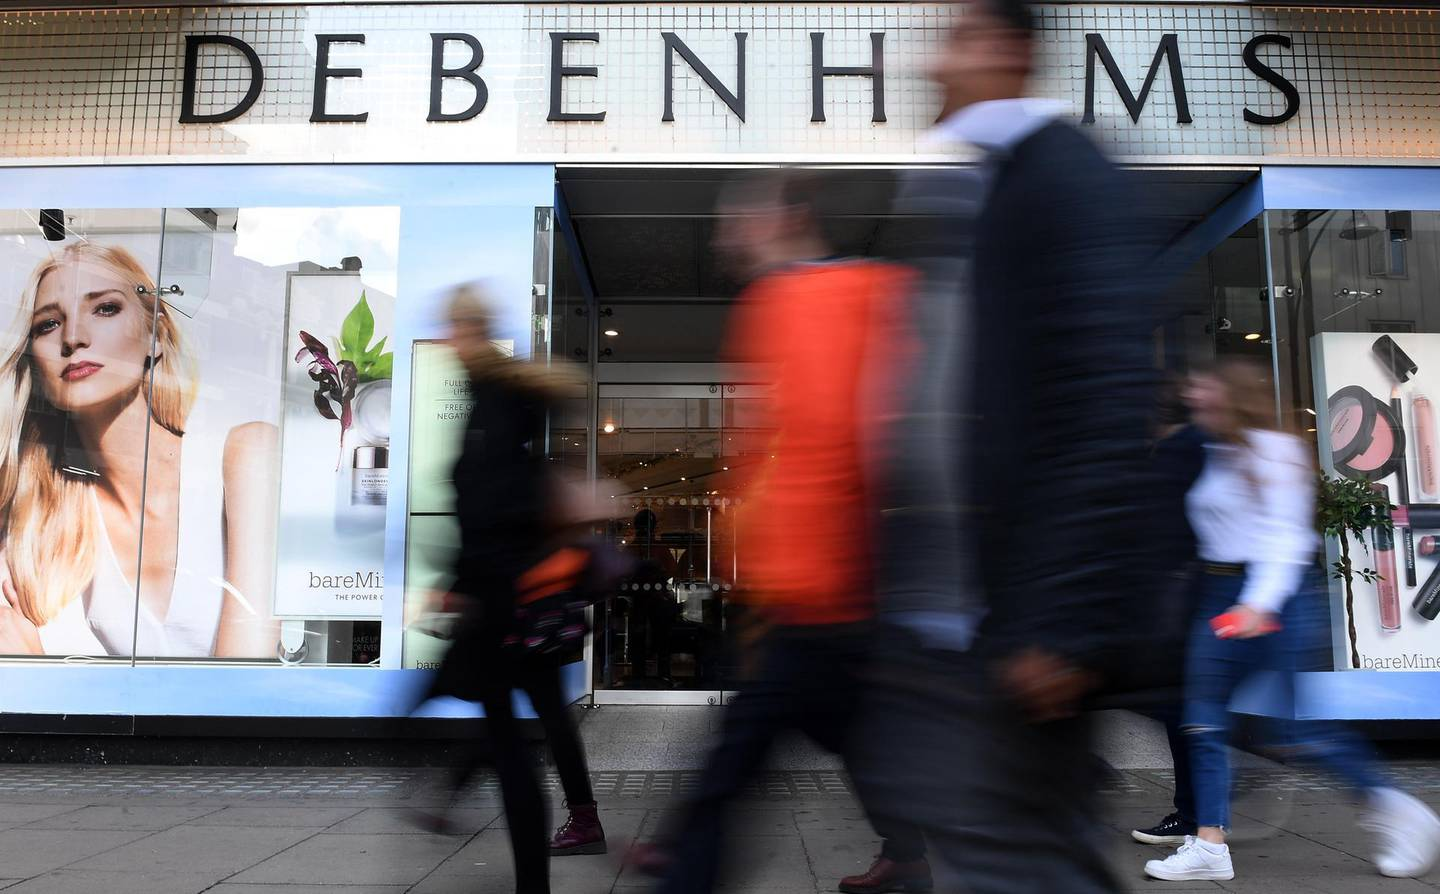 epa07493676 (FILE) - Pedestrians pass a Debenhams store in Oxford Street in London, Britain, 25 October 2018 (reissued 09 April 2019). Reports on 09 April 2019 state Debenhams may be close to administration after rejecting an offer valued at 200 million pounds by Sports Direct to invest in the company. Debenhams that employs 25,000 staff has 640 million pounds worth of debt and issued three profit warnings in 2018.  EPA/ANDY RAIN